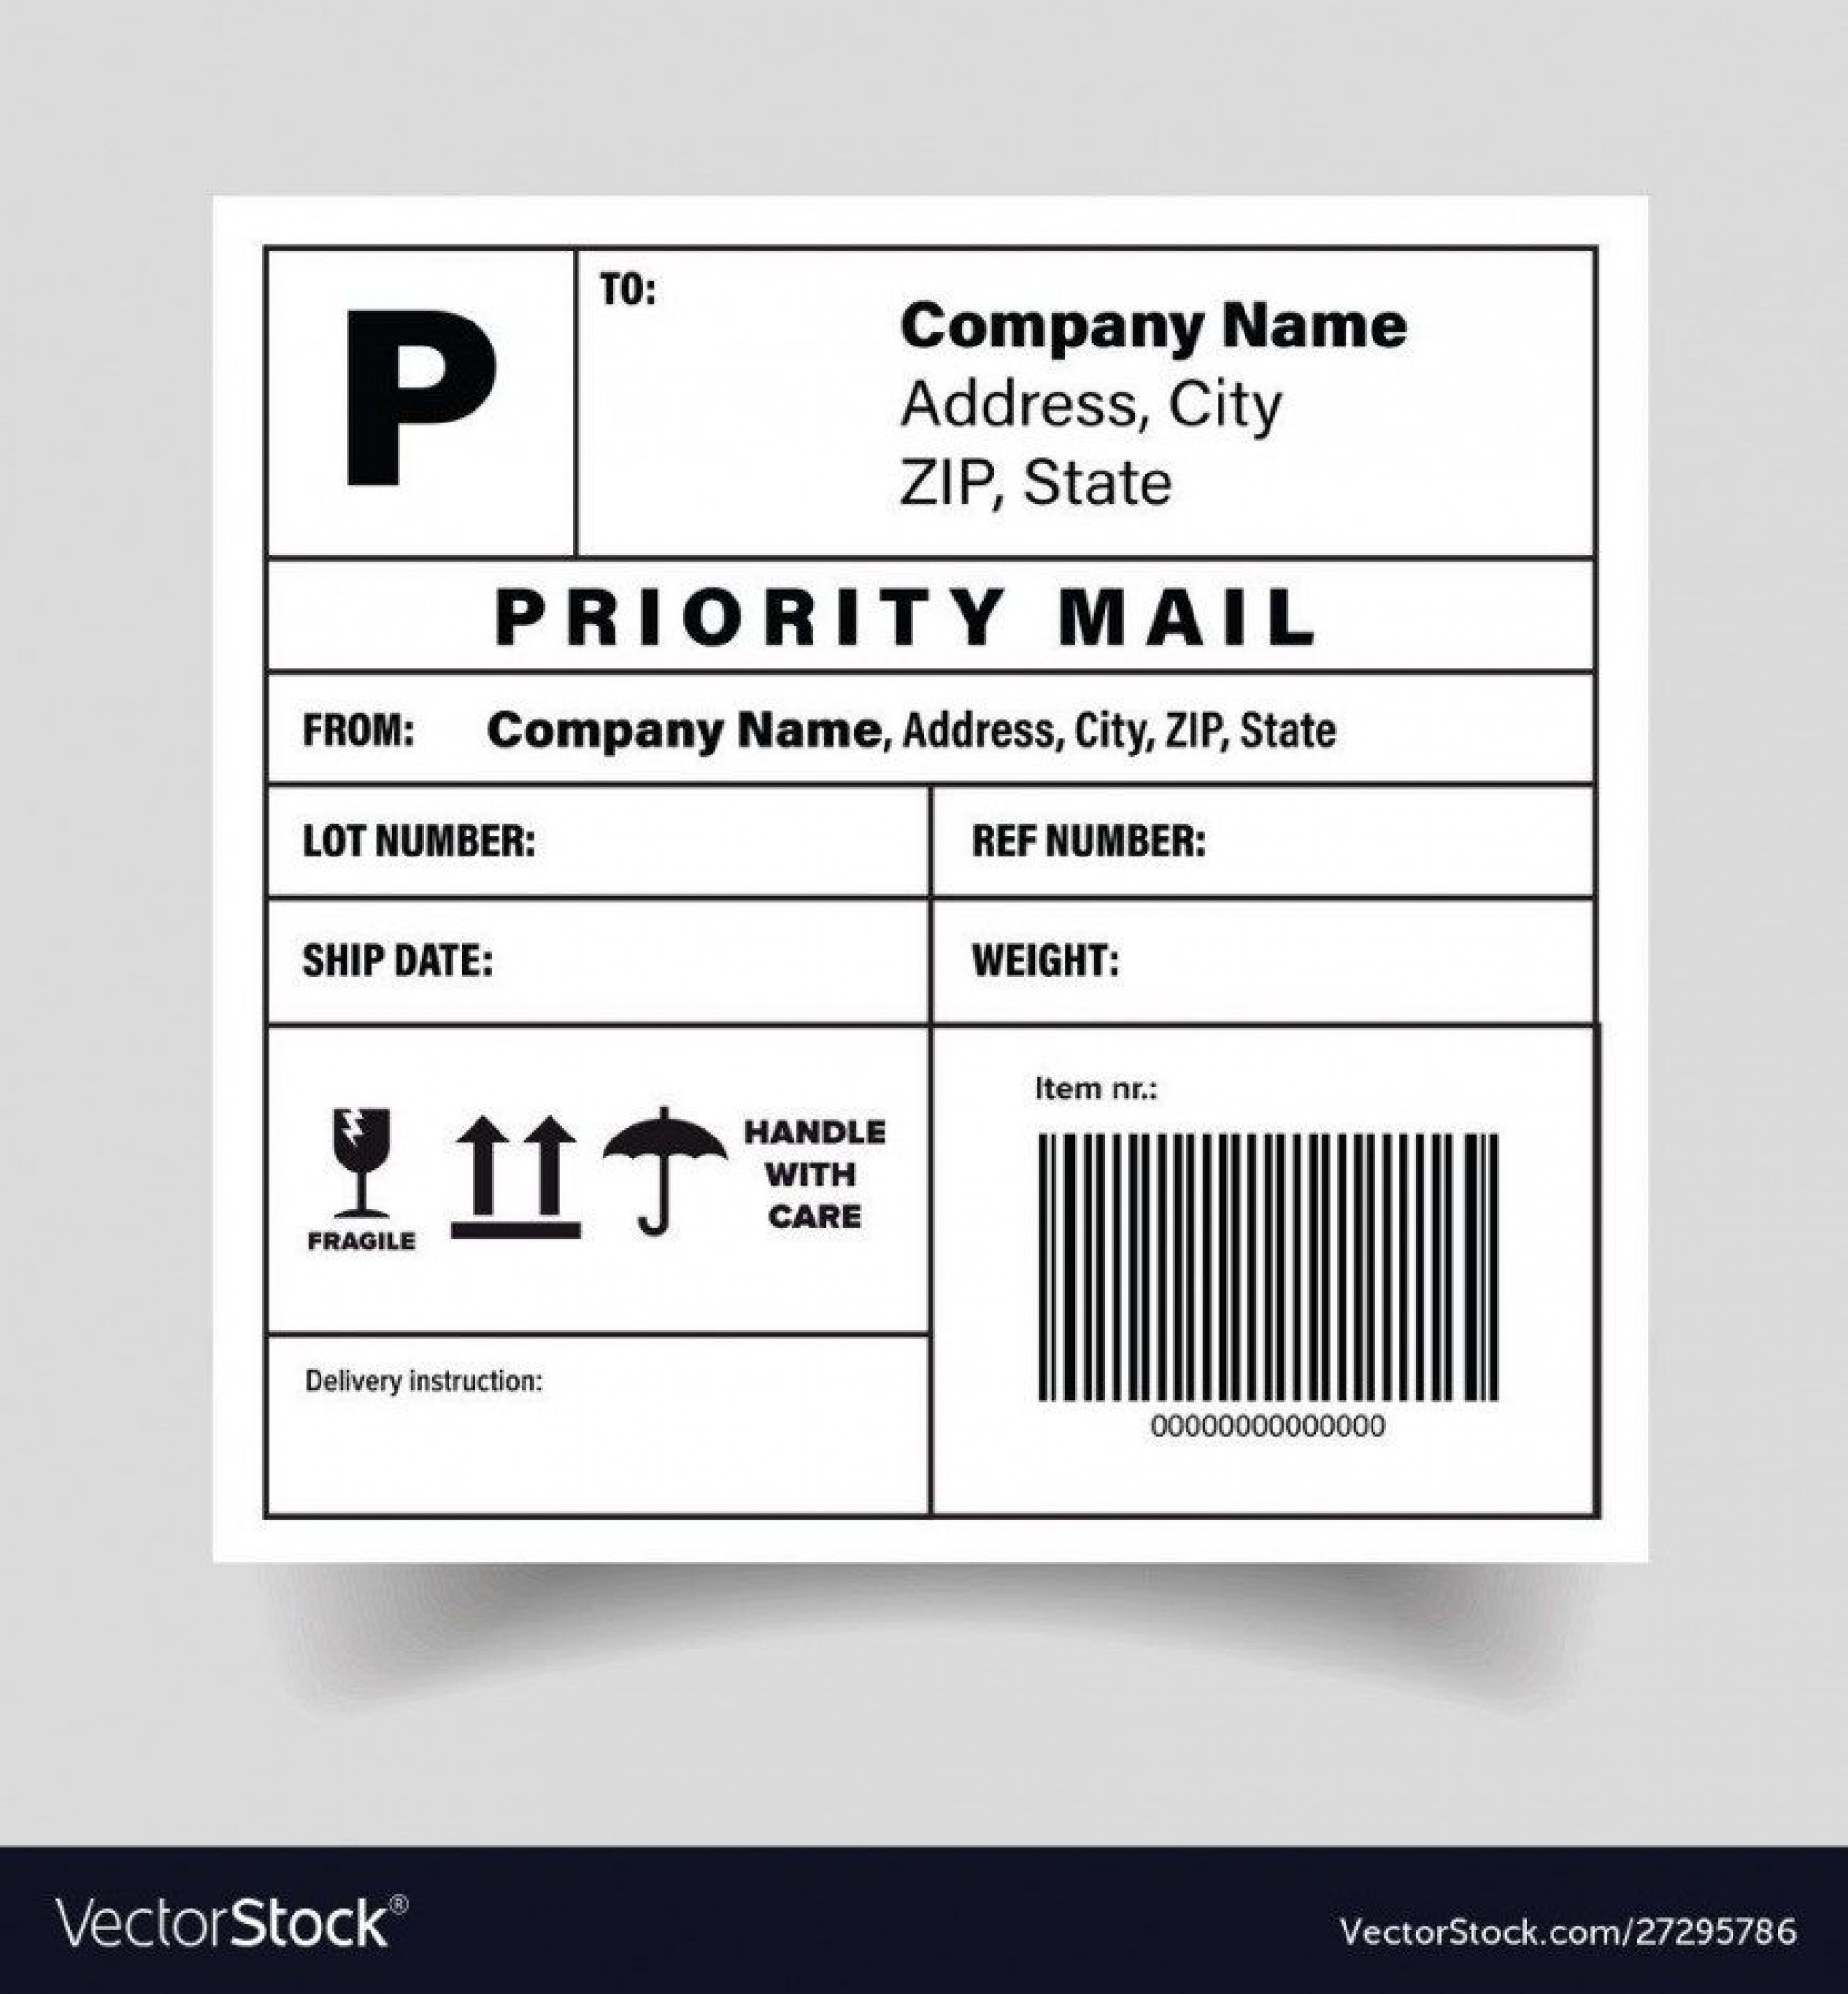 005 Simple Free Shipping Label Template Printable High Def  Online1920